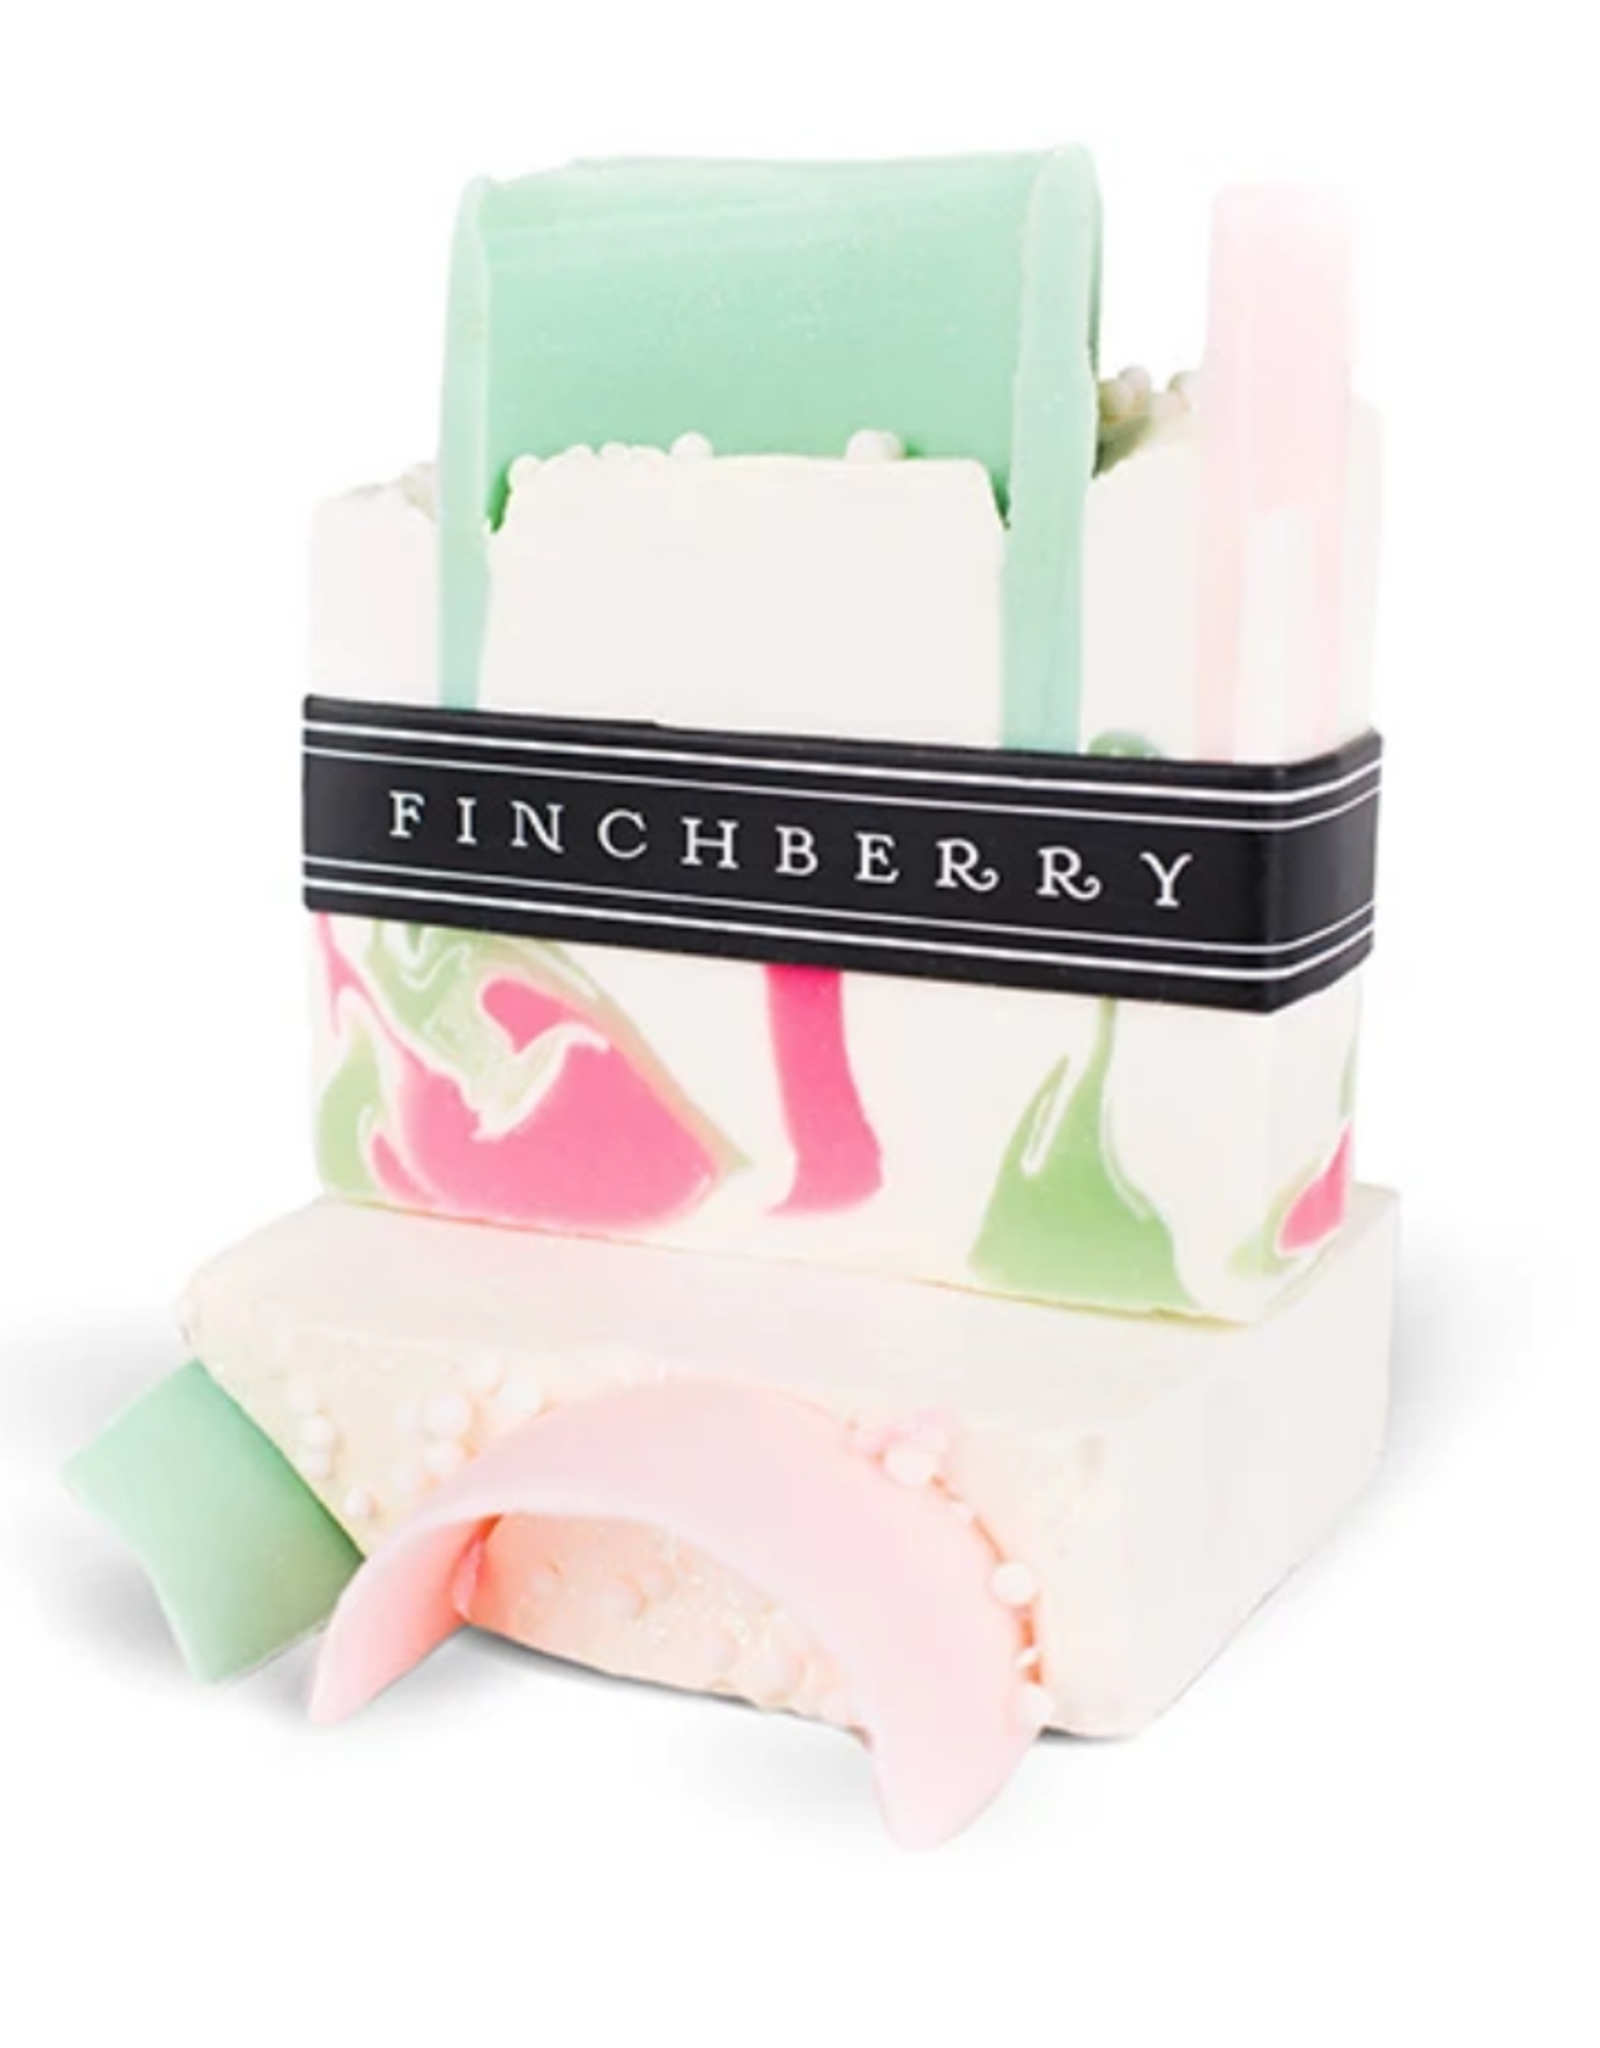 Finchberry Finchberry Handcrafted Vegan Soap Sweetly Southern